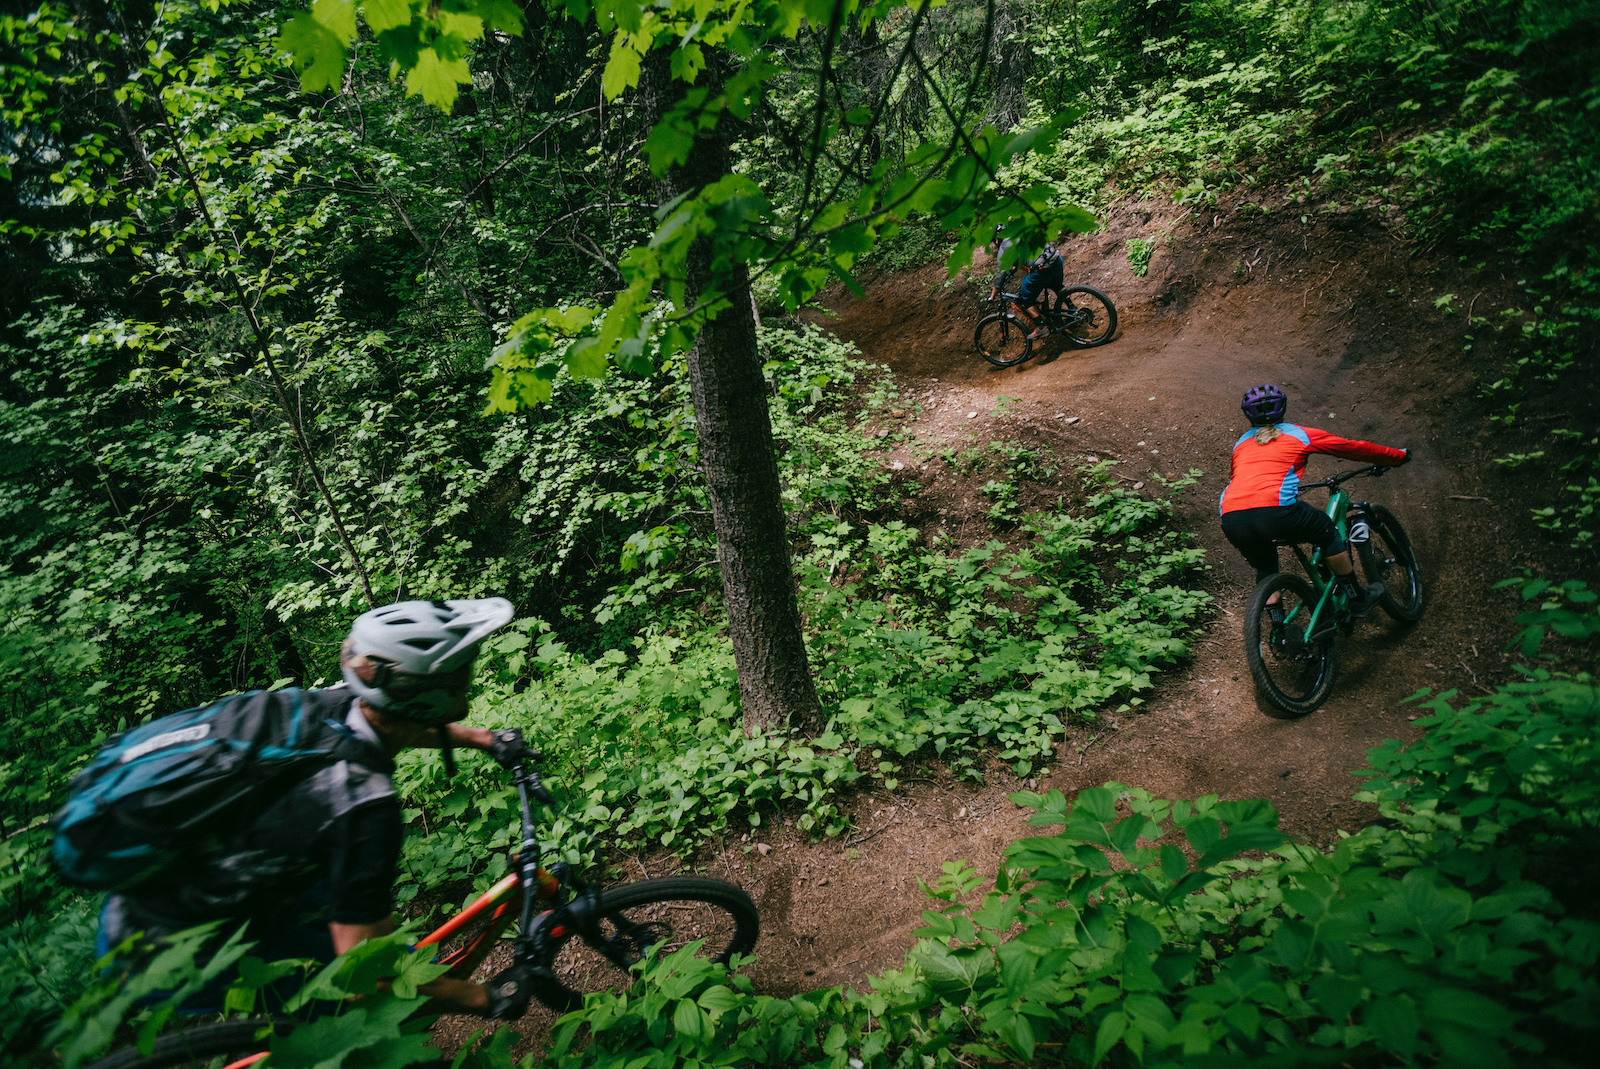 From scenic views to flowy trails Fernie offers it all. Berms like this will have you coming back for more.